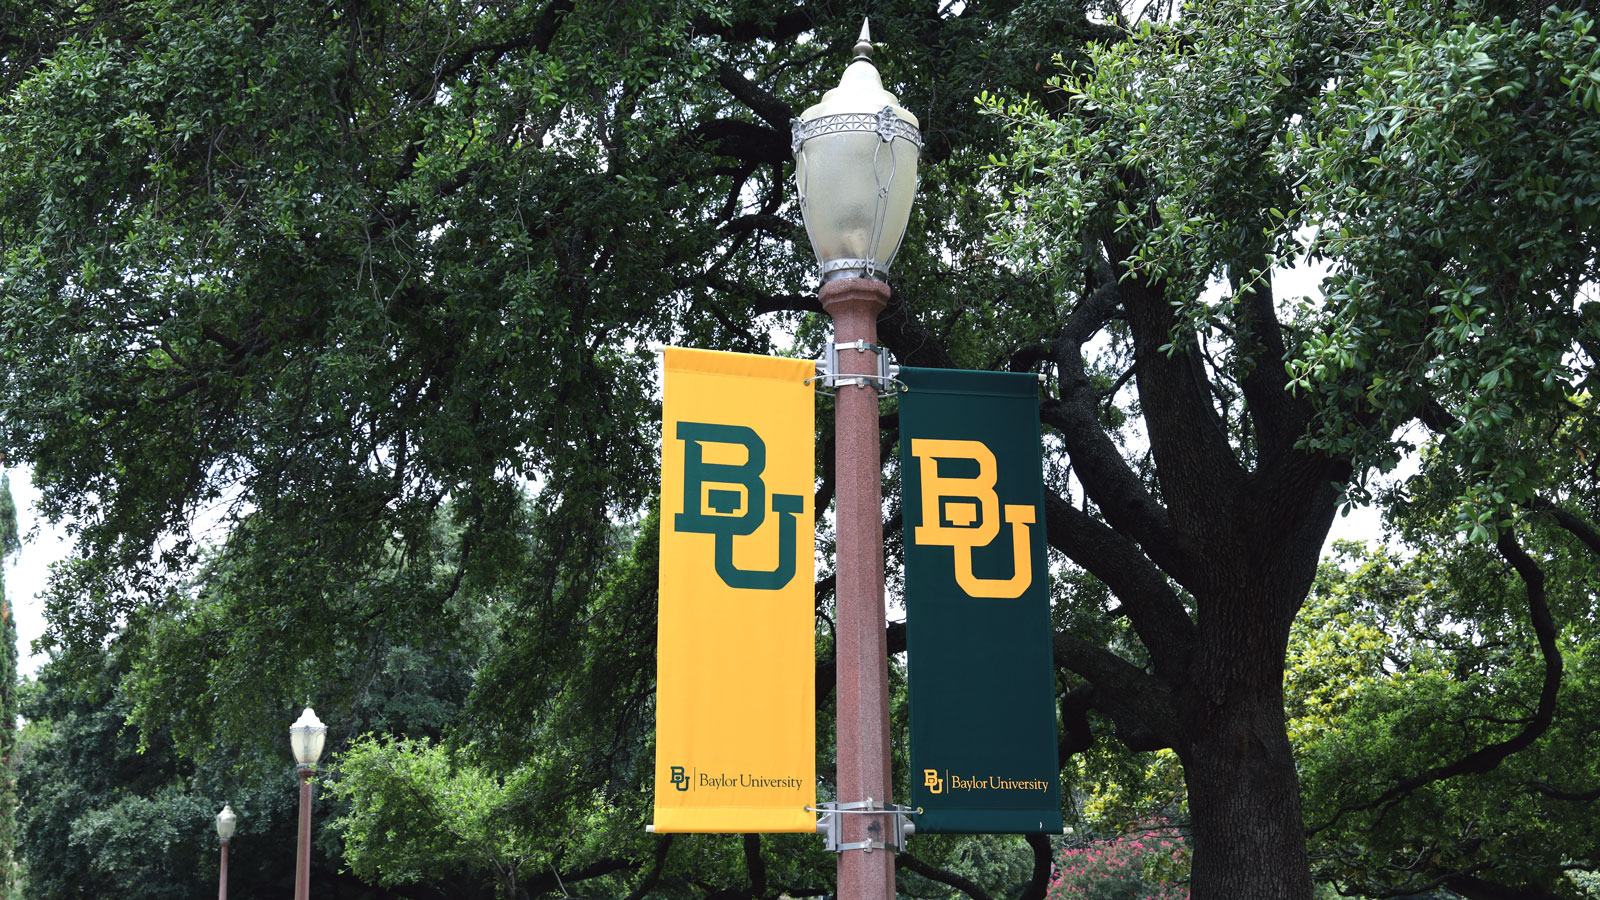 As the sun sets on Baylor's campus, memorial lampposts adorned with Baylor banners light the ways of time.